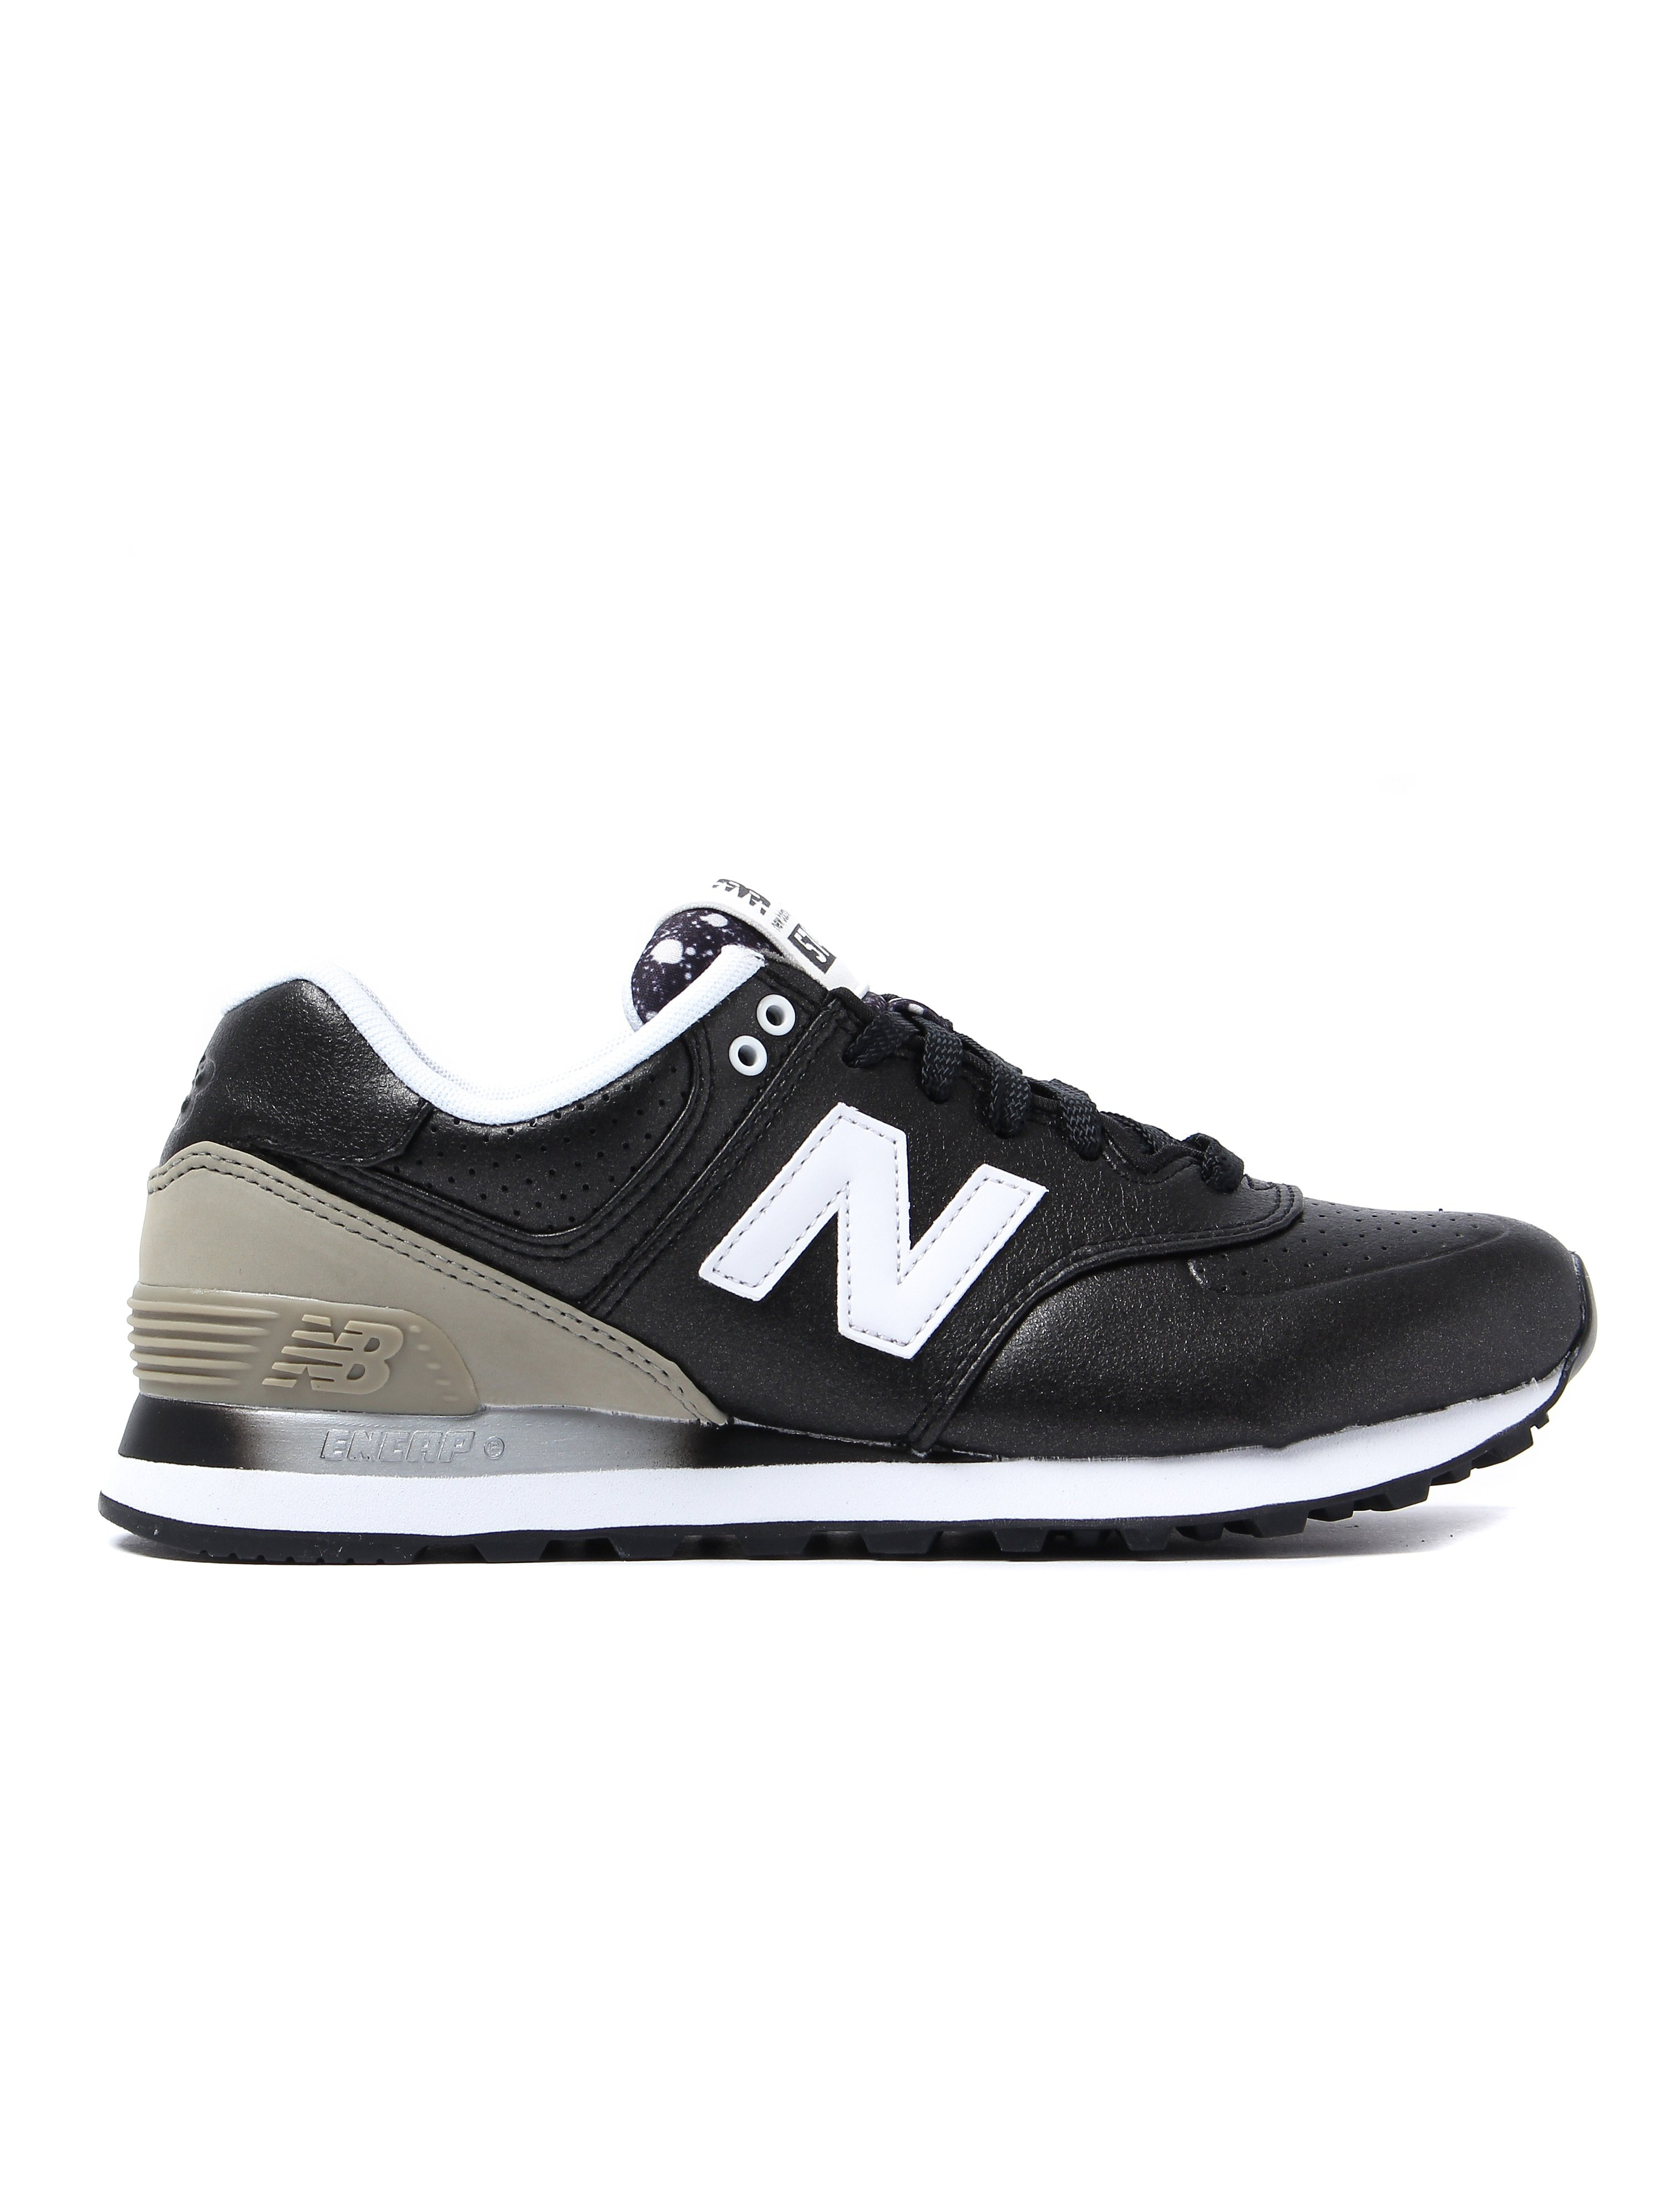 New Balance Women's 574 Low Top Trainers - Black Leather